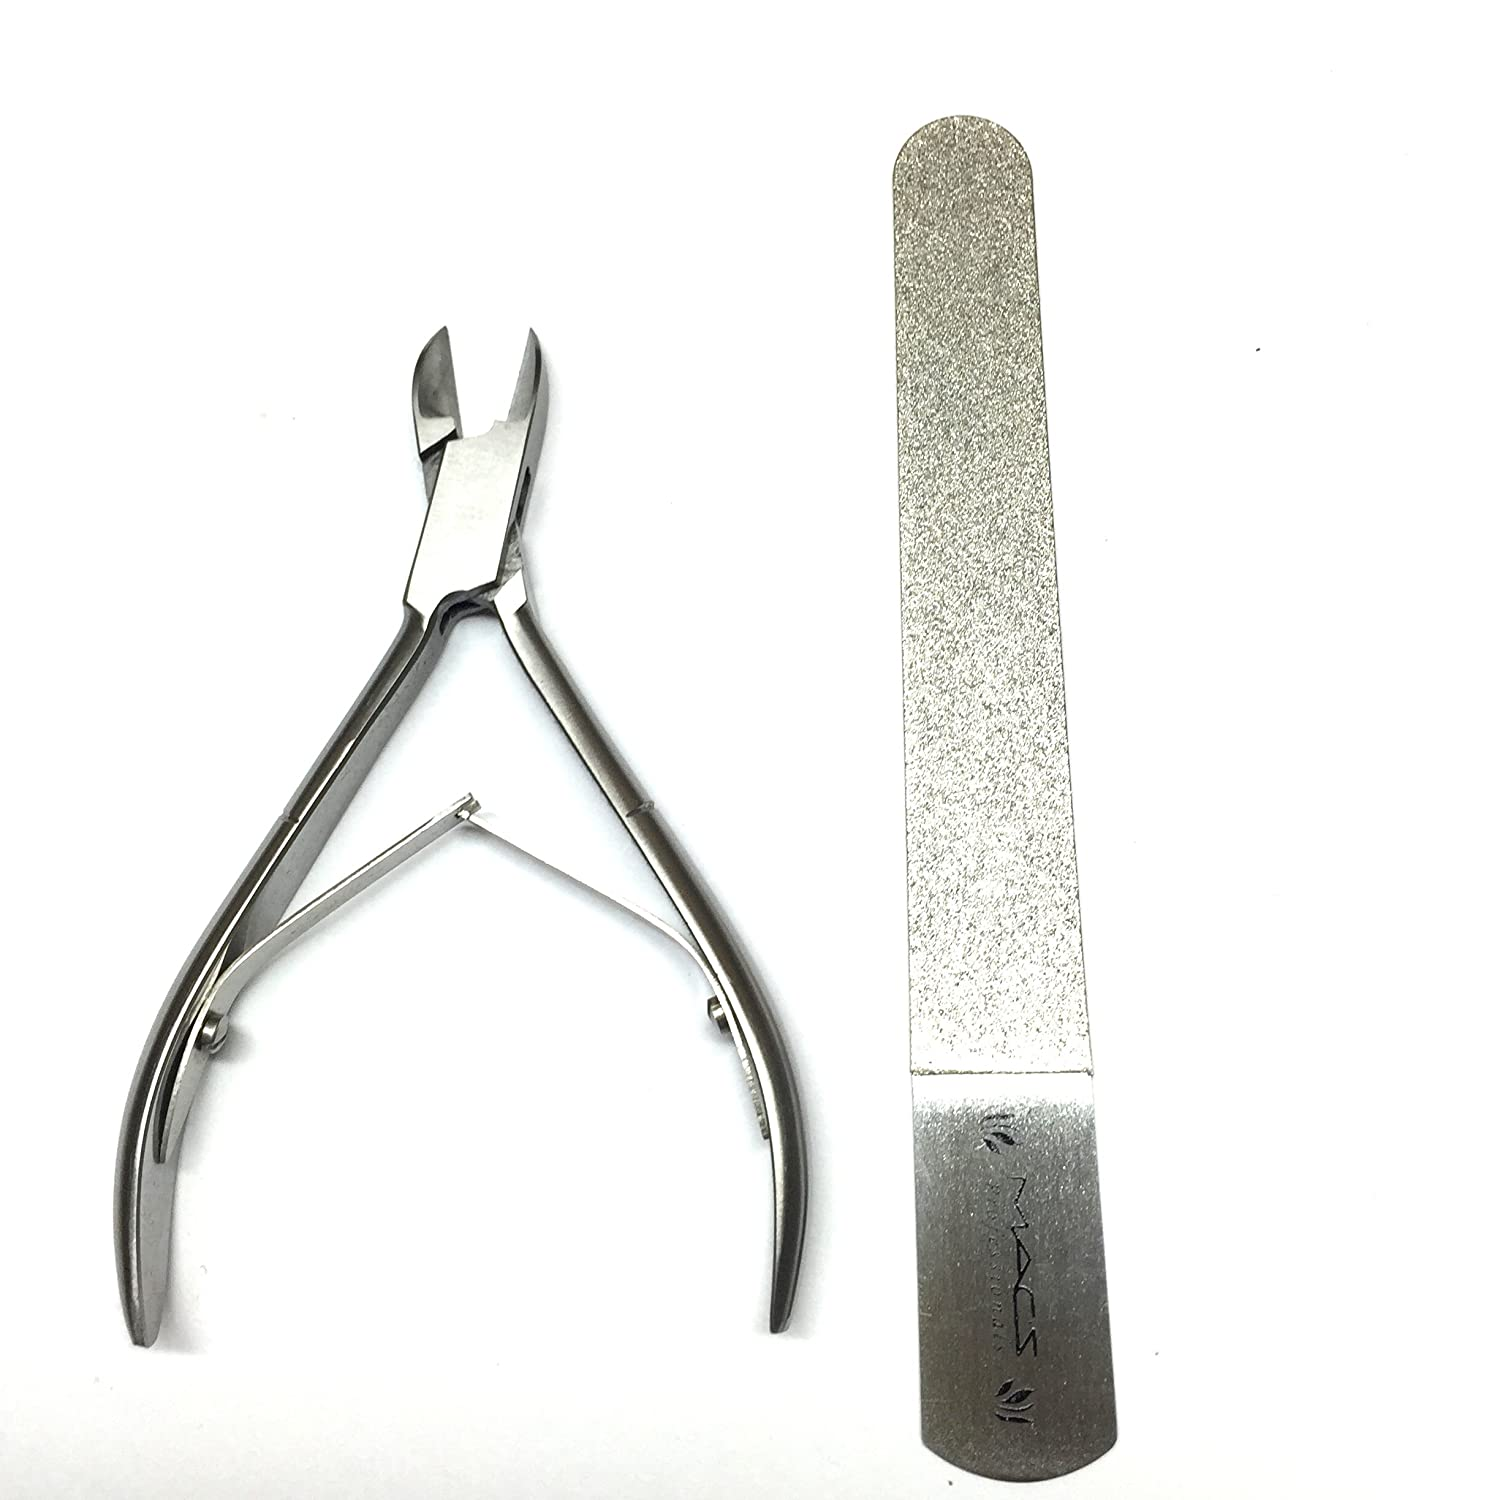 Macs Professional Toe Nail Nipper & Ingrown Toe Nail Clippers With Diamond Nail File Made Of High Grade Surgical Stainless Steel Macs Professional Quality-0788